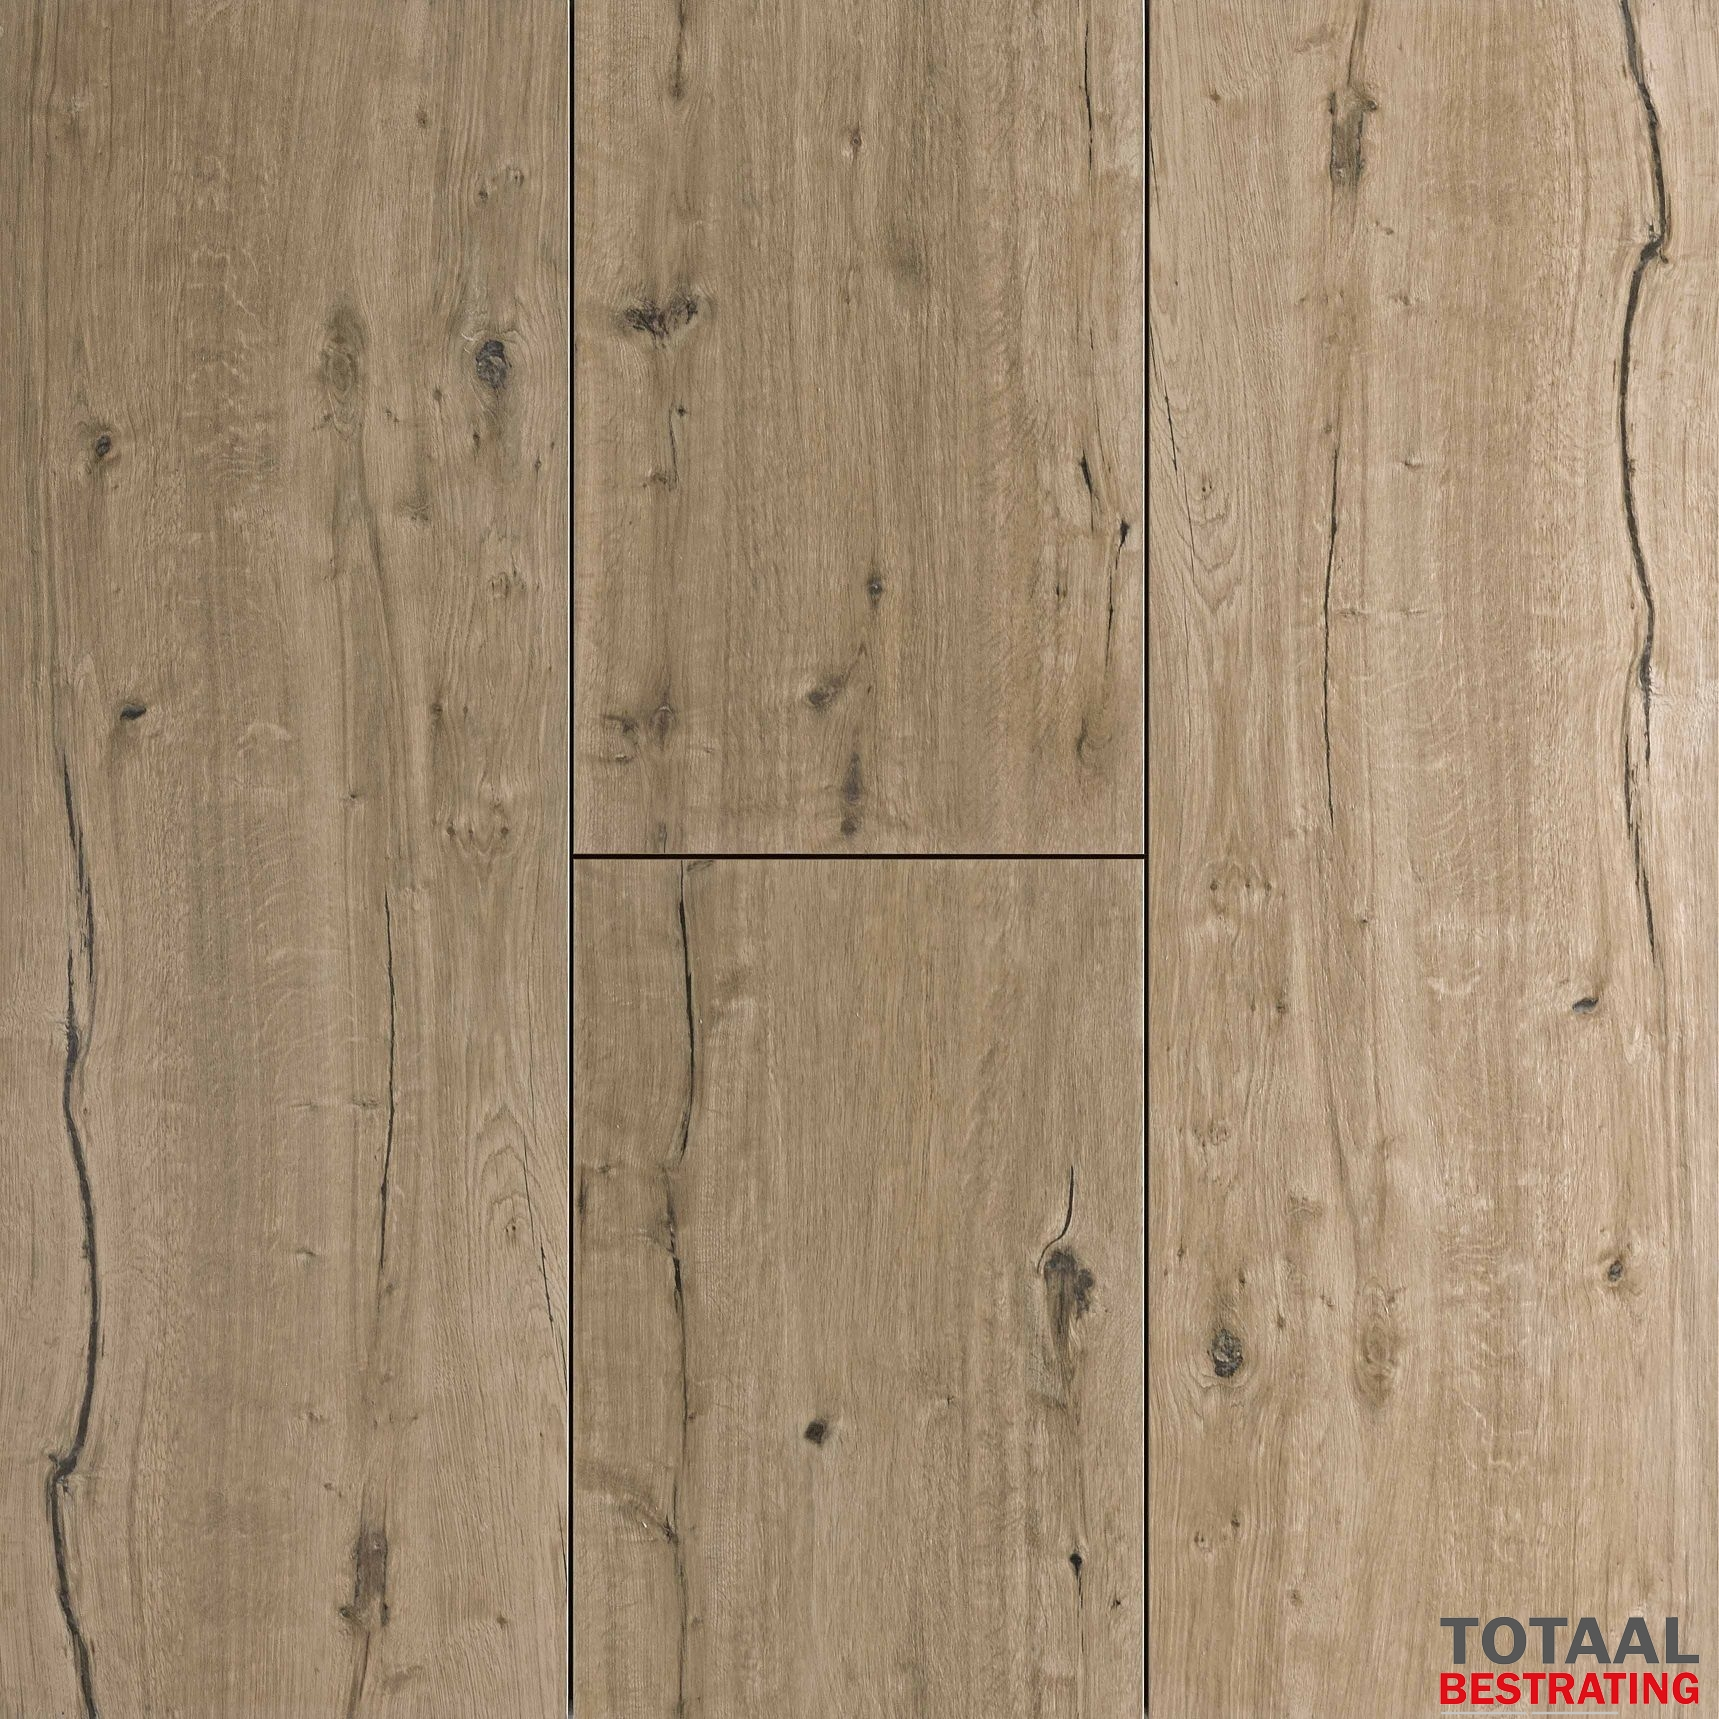 Grindmatten Leggen Keramisch Woodlook Light Oak 40x120x2cm Totaalbestrating